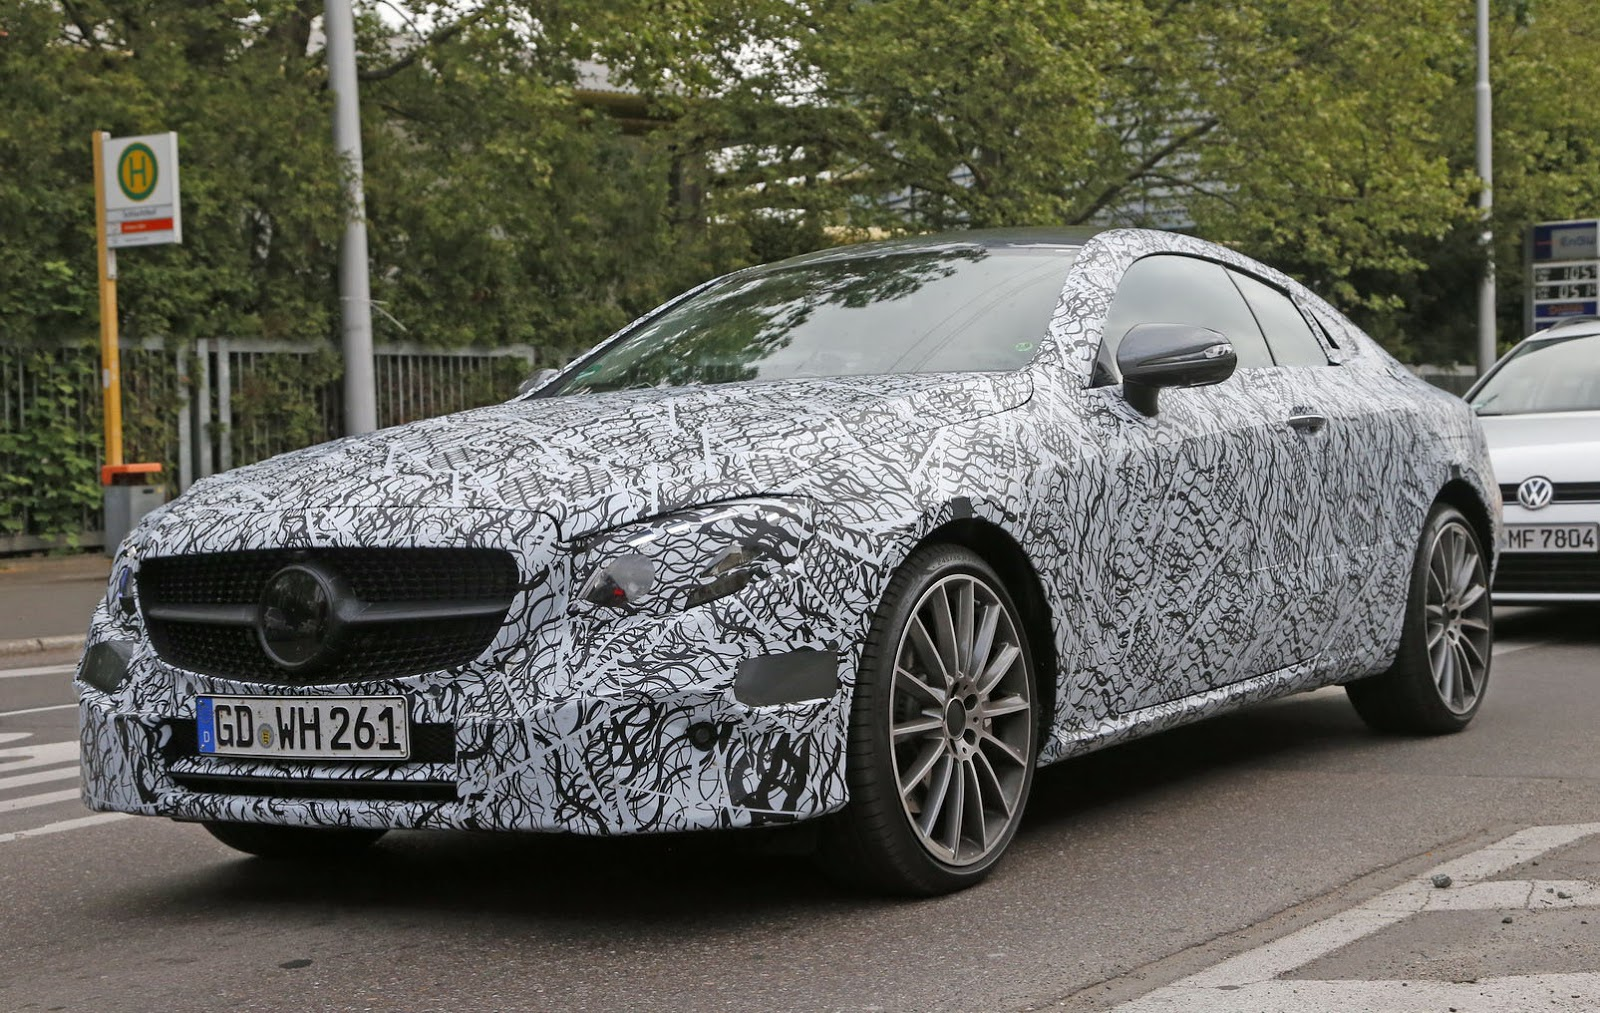 2018 Mercedes Benz E Class Cabriolet photo - 5